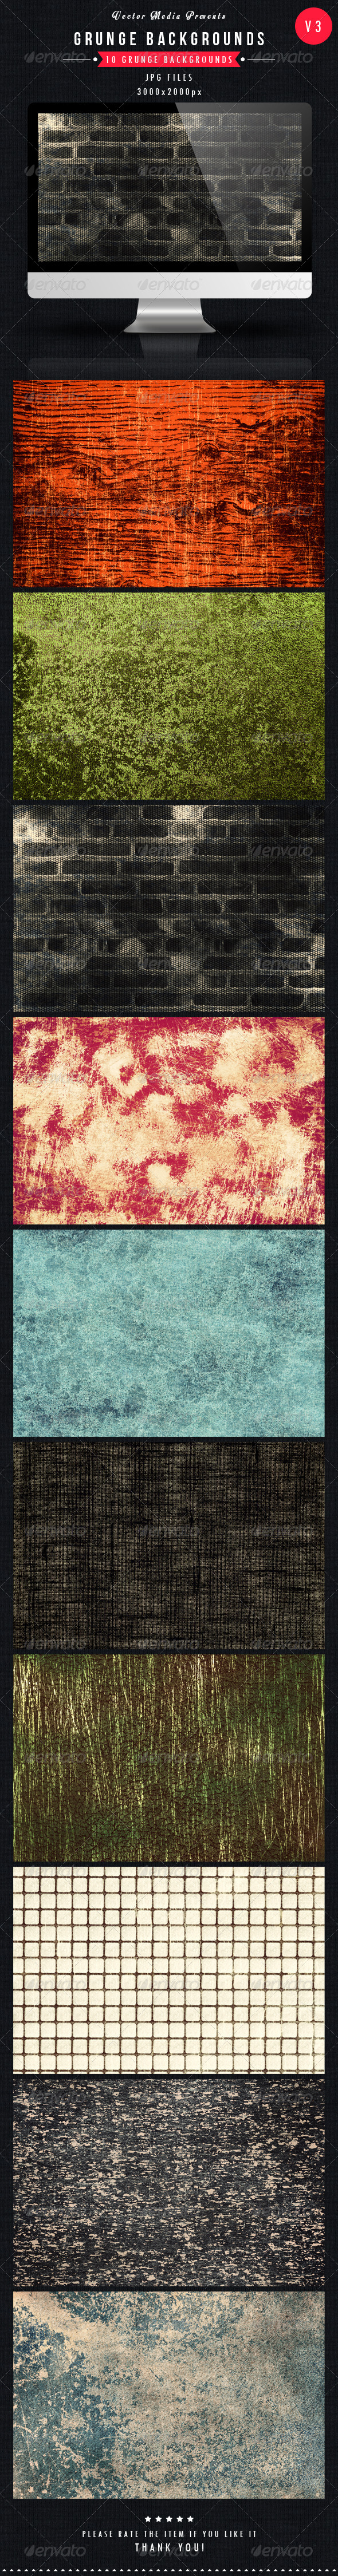 GraphicRiver Grunge Backgrounds Vol 3 5139894